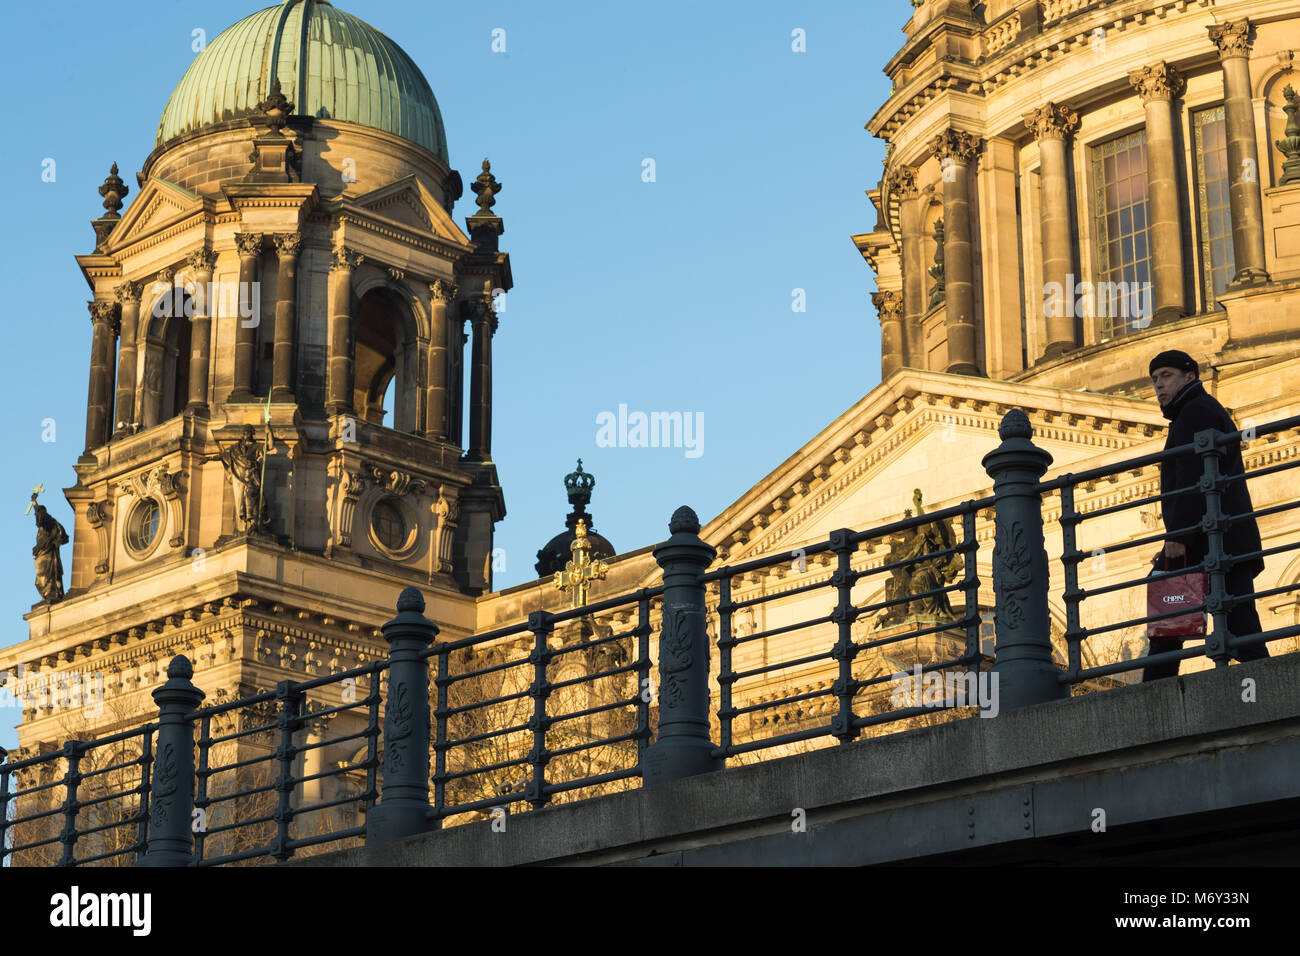 Il Berliner Dom, Am Lustgarten, nel quartiere Mitte di Berlino, Germania Immagini Stock